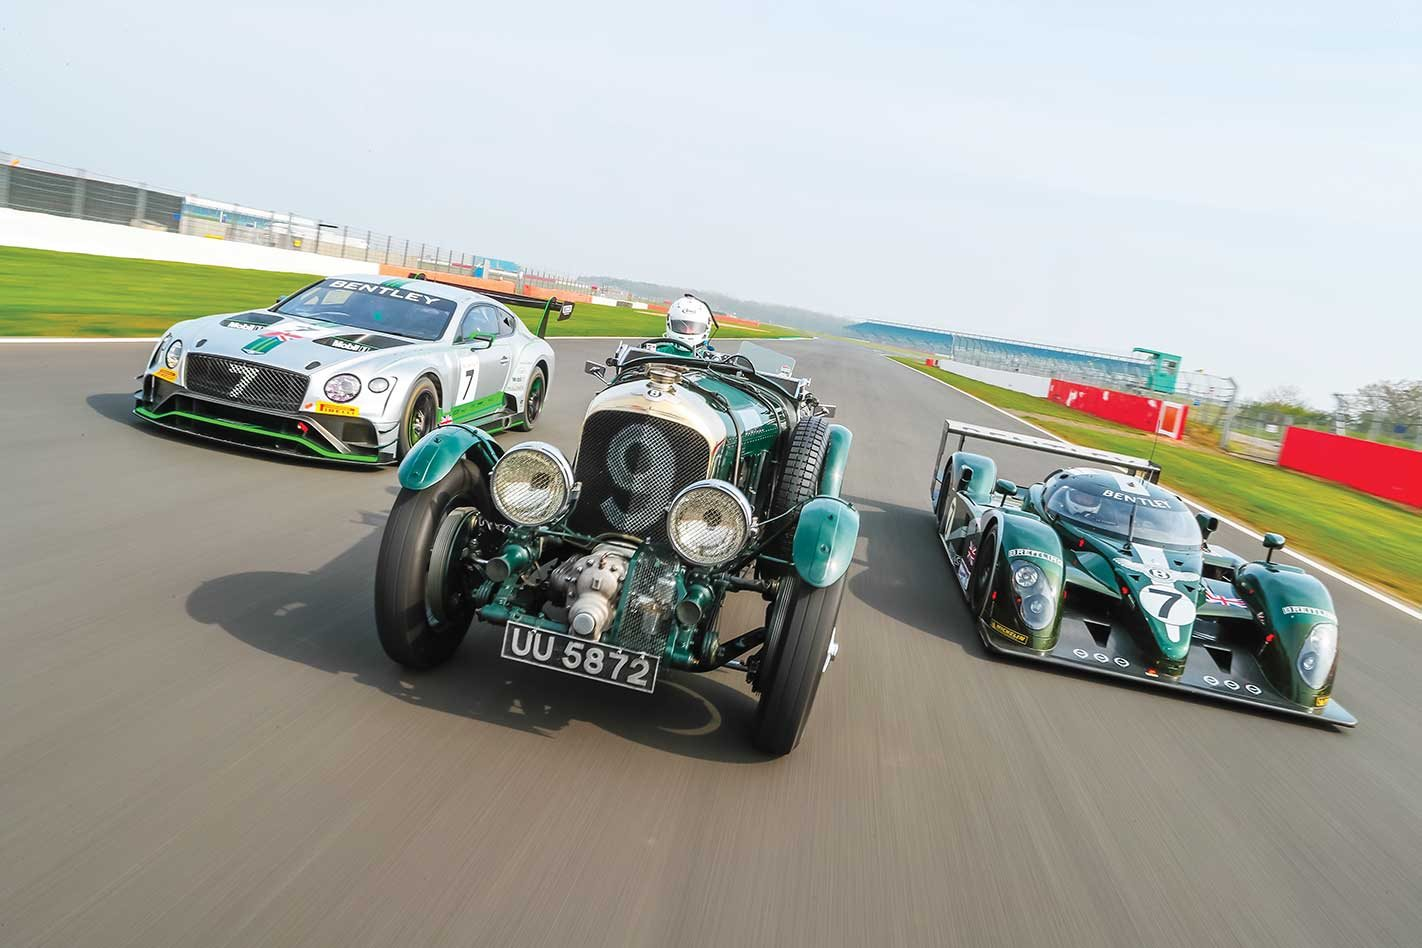 100 years of Bentley: Bentley Le Mans racers driven